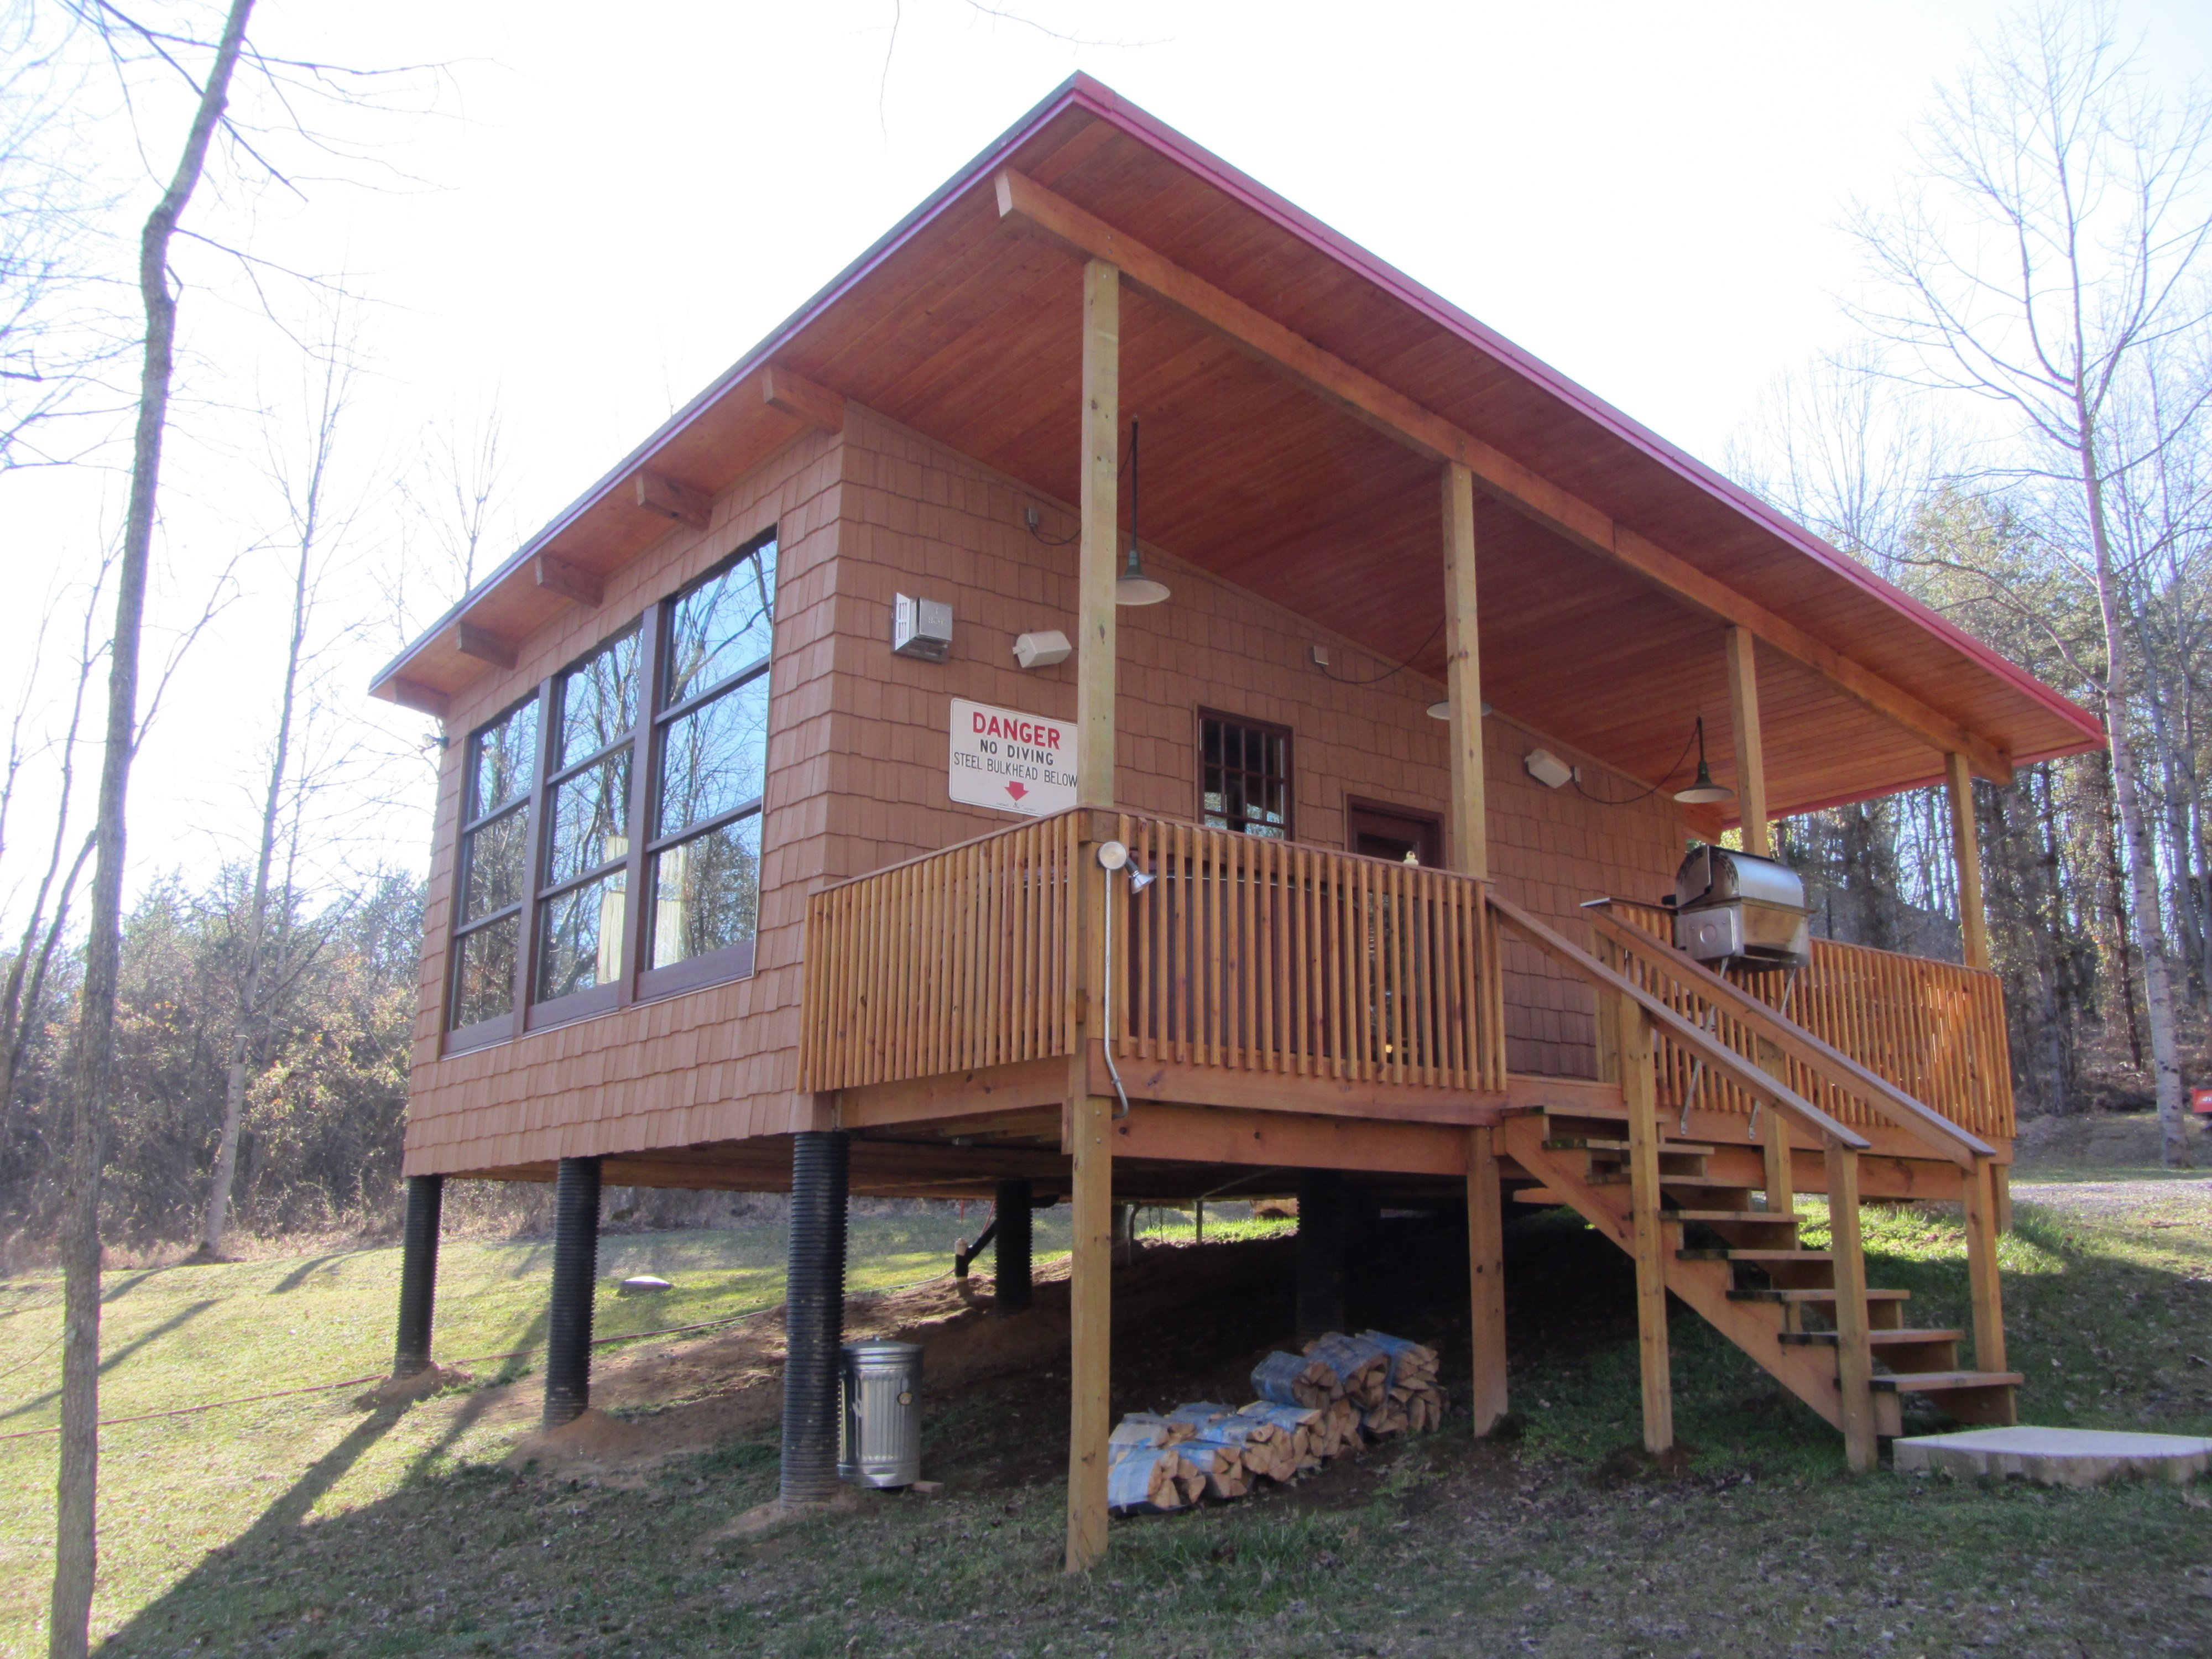 lodge cabins conference park center punderson state front exterior reservations ohio manor in and